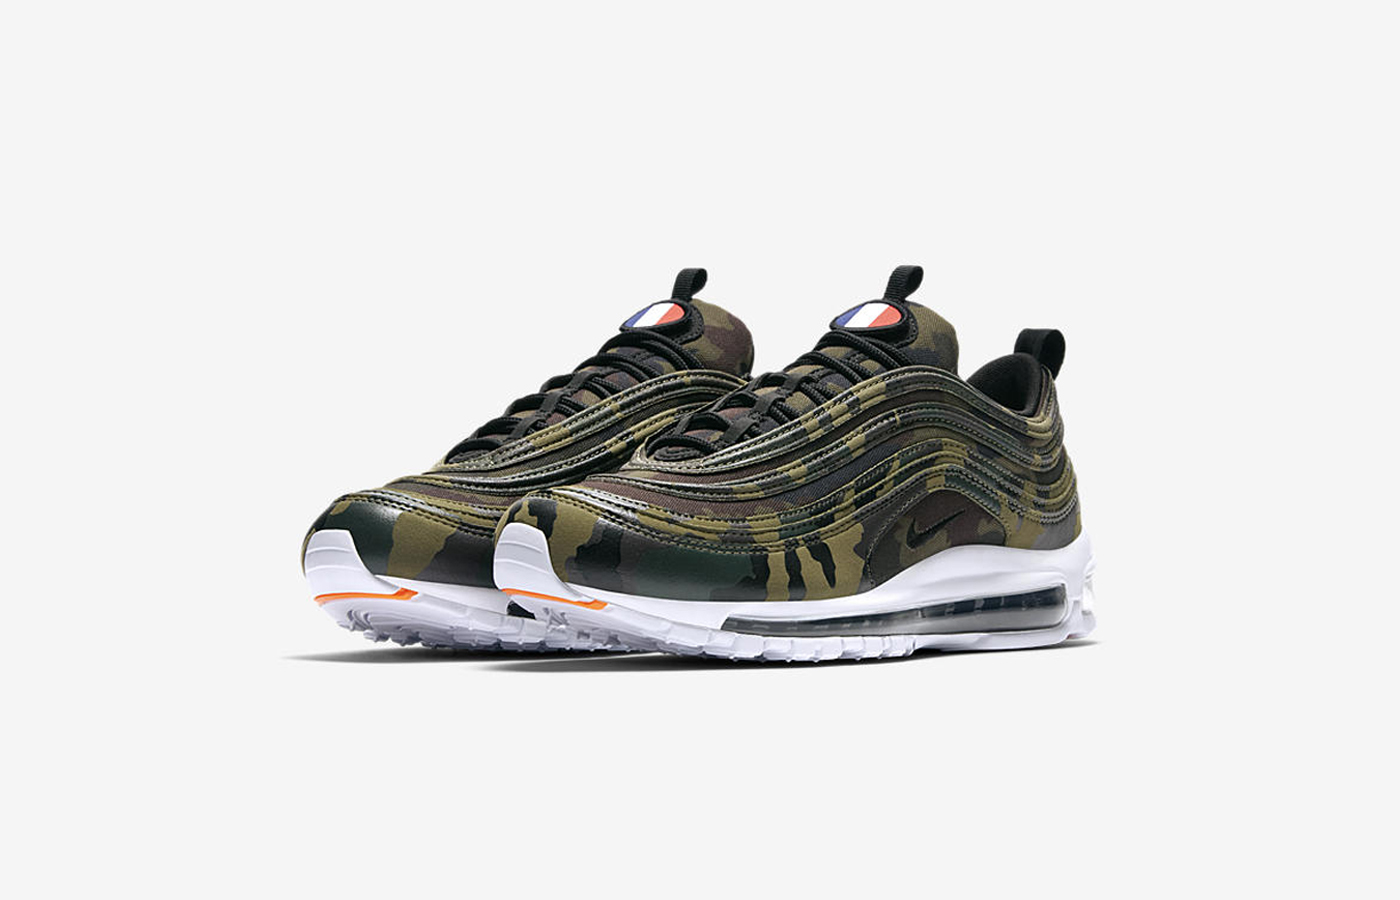 nike air max 97 french camo release date sneakers addict. Black Bedroom Furniture Sets. Home Design Ideas